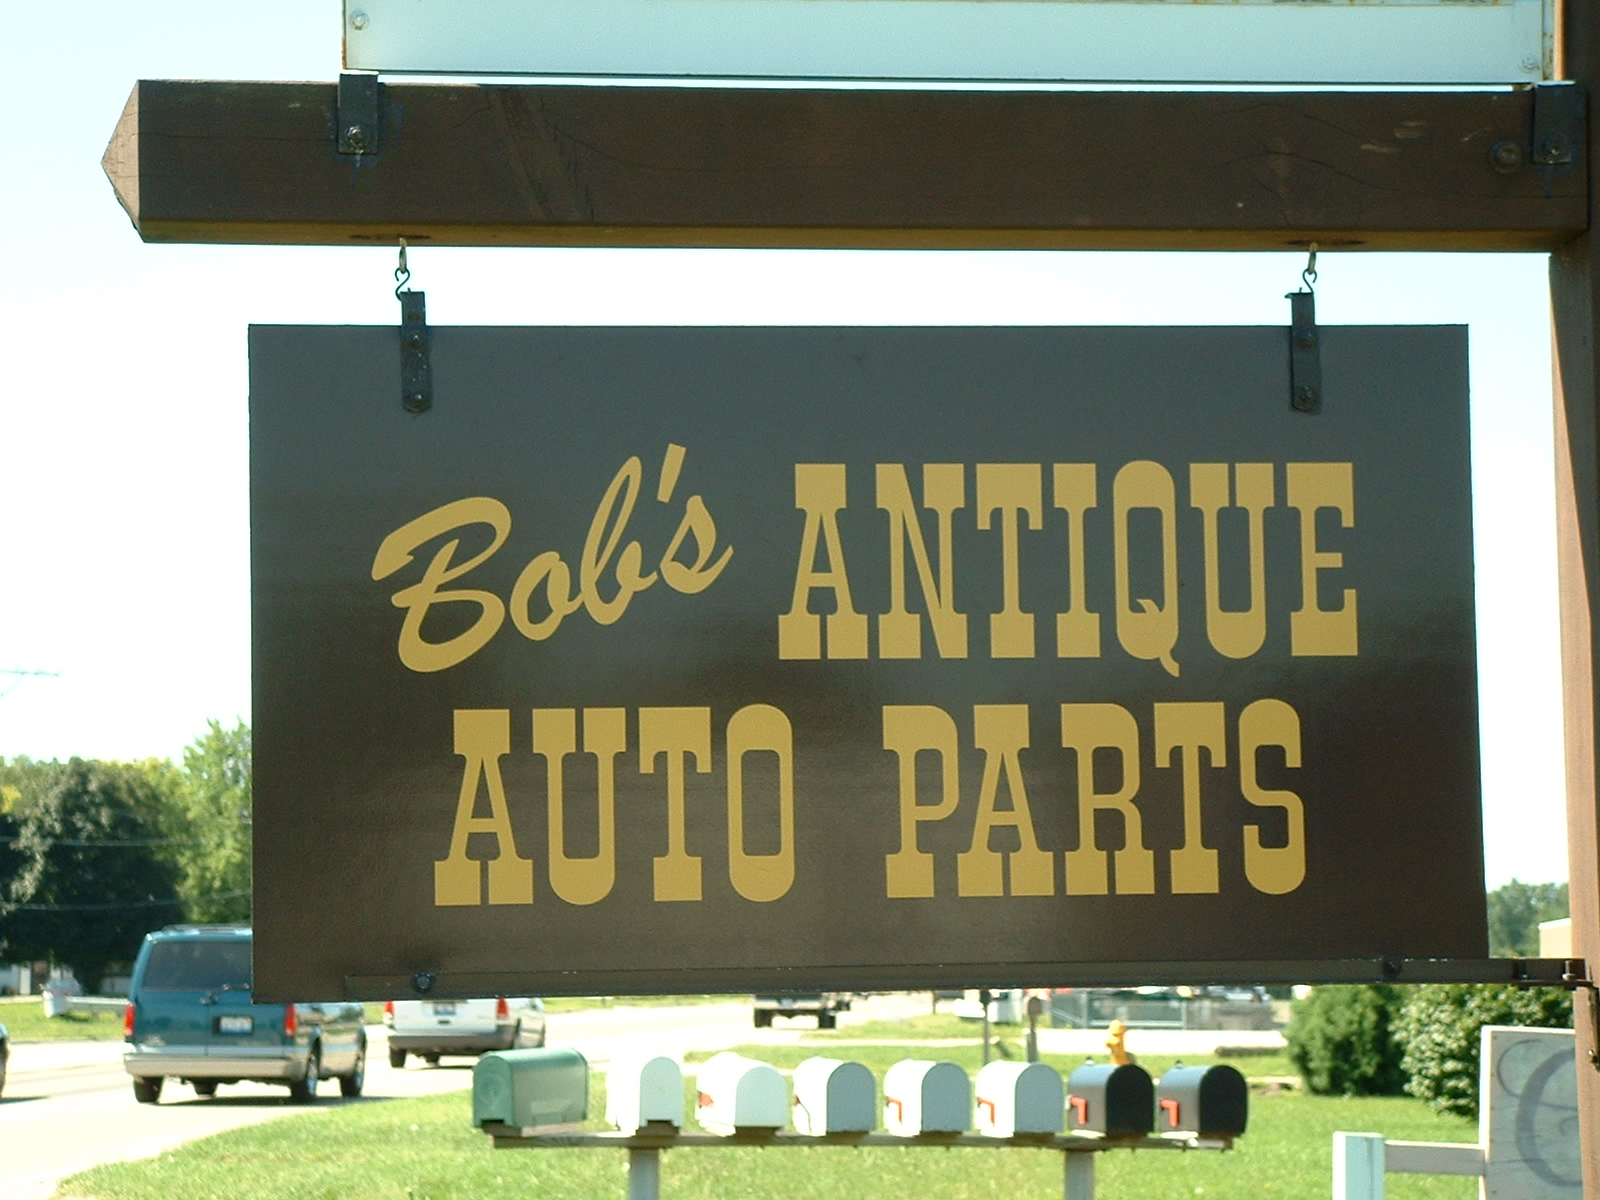 Bob's Antique Auto Parts